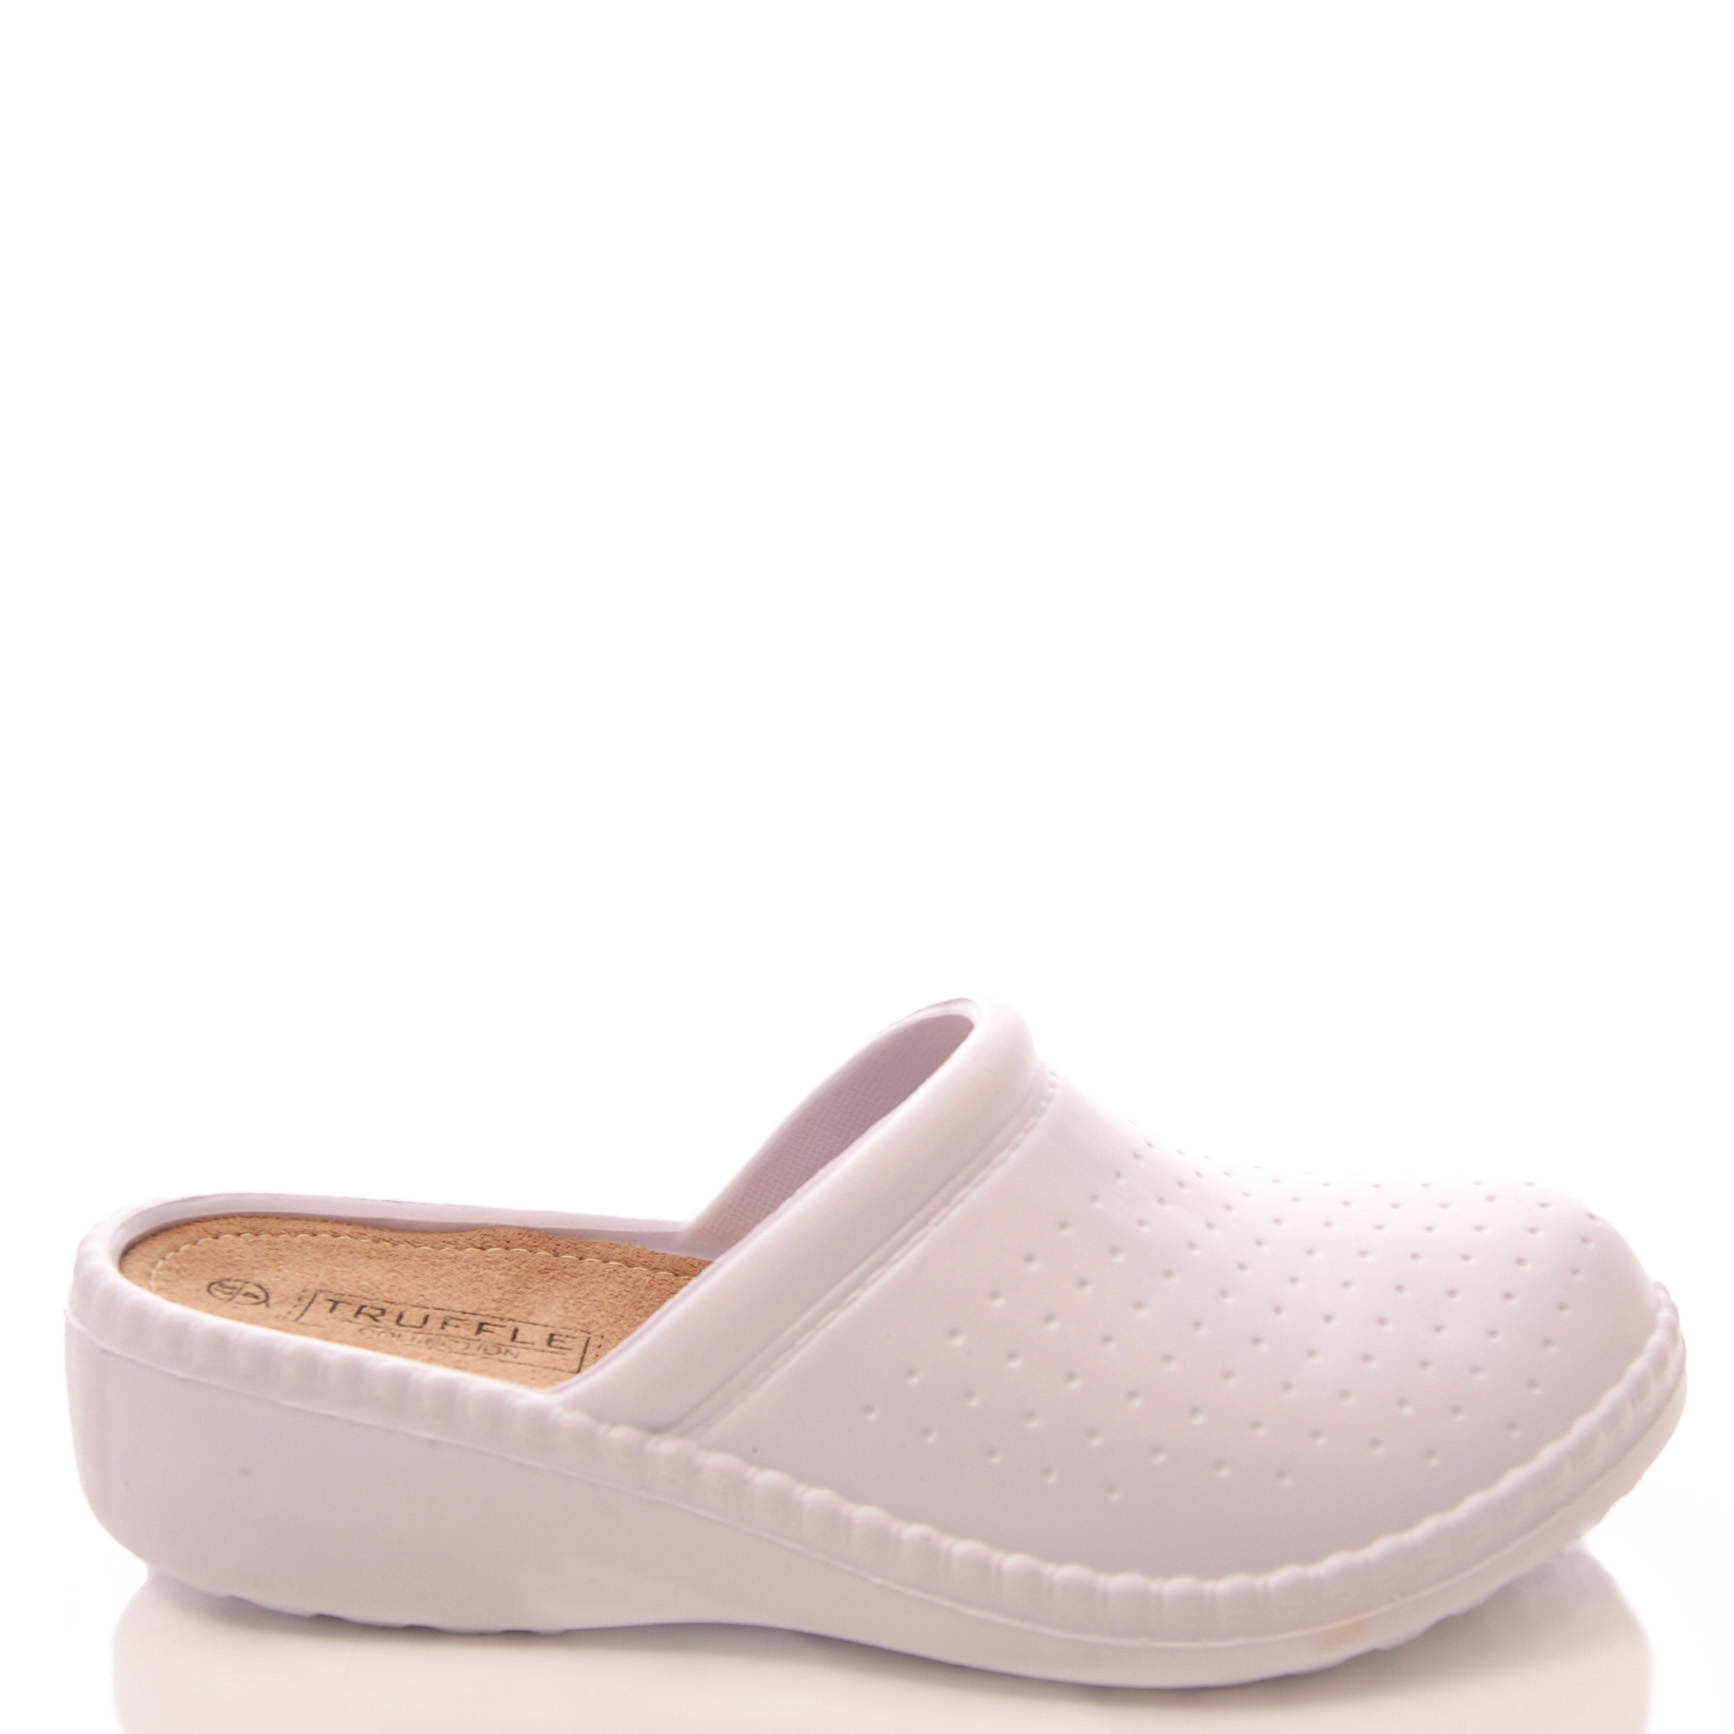 shoes for kitchen workers 42 inch sink ladies womens orthopedic work beauty nursing clogs mules